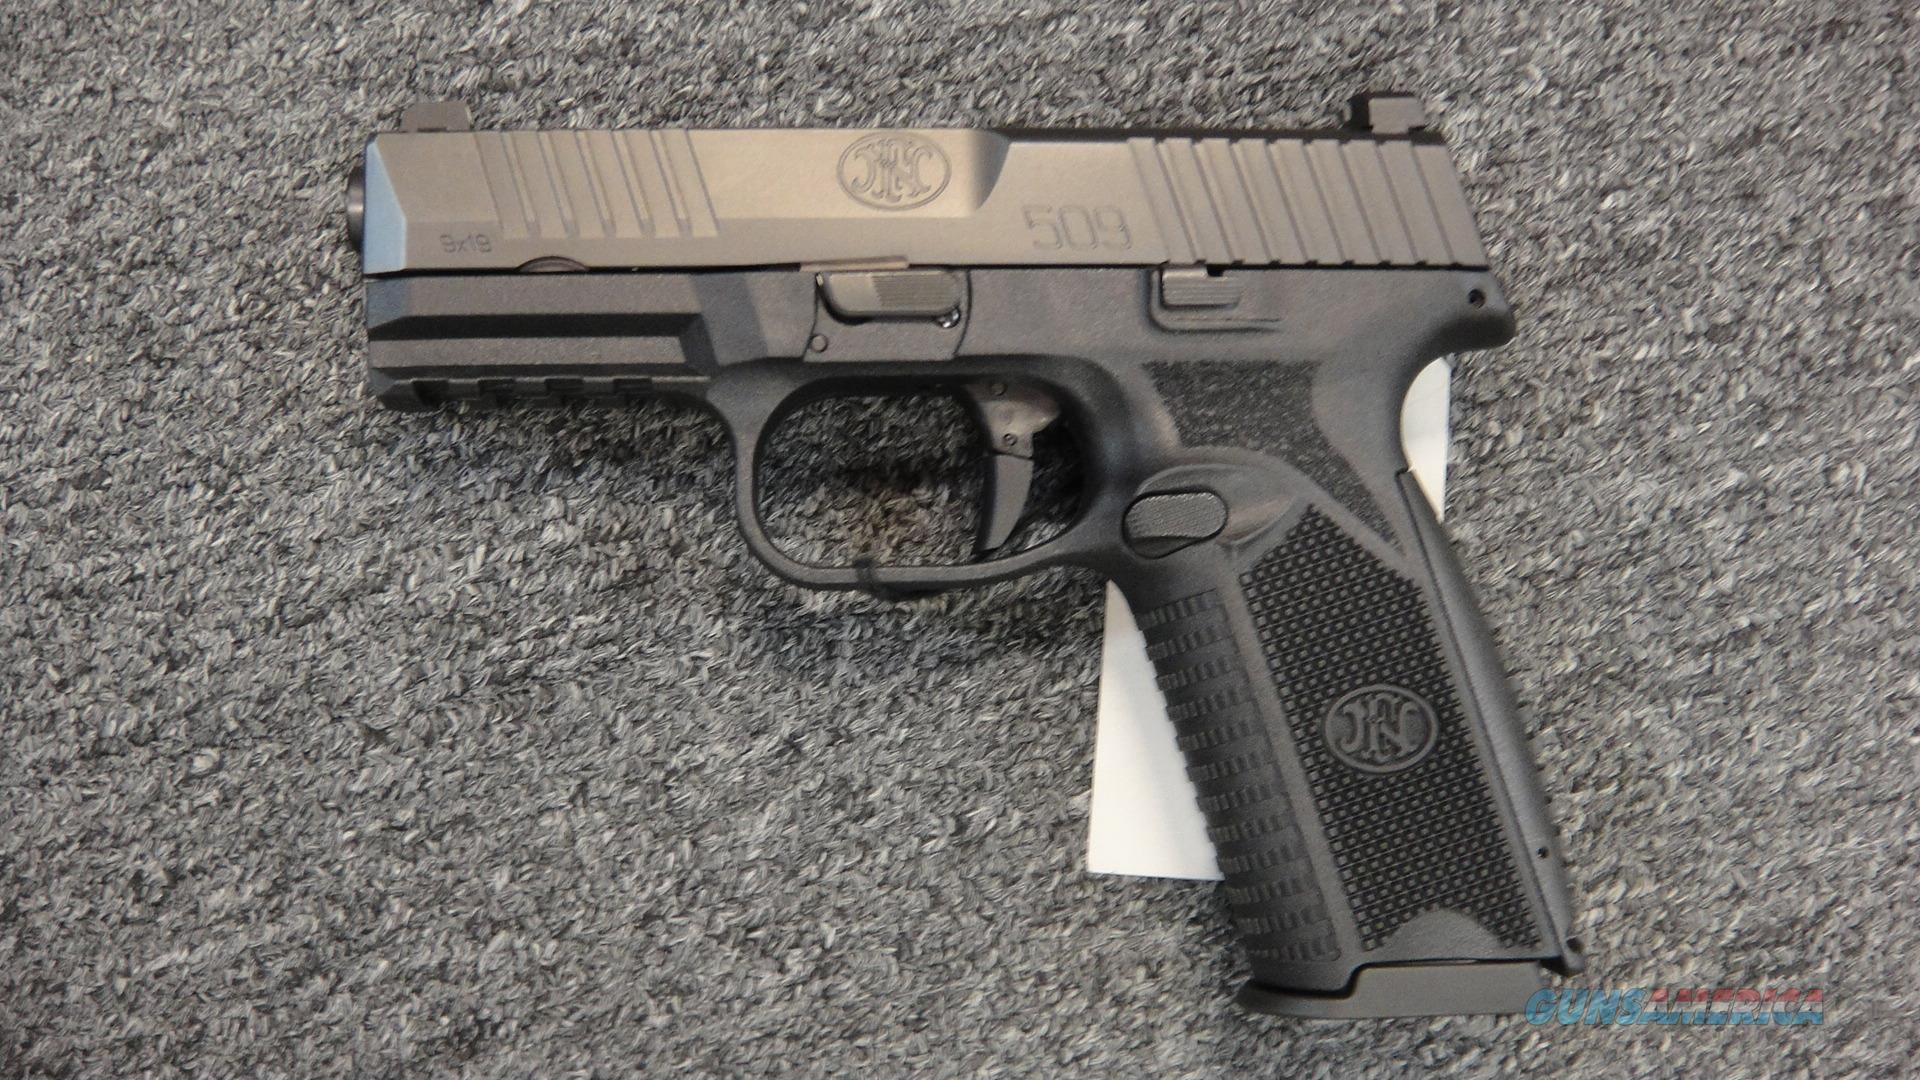 FNH 509 w/ luminescent sights  Guns > Pistols > FNH - Fabrique Nationale (FN) Pistols > FN 509